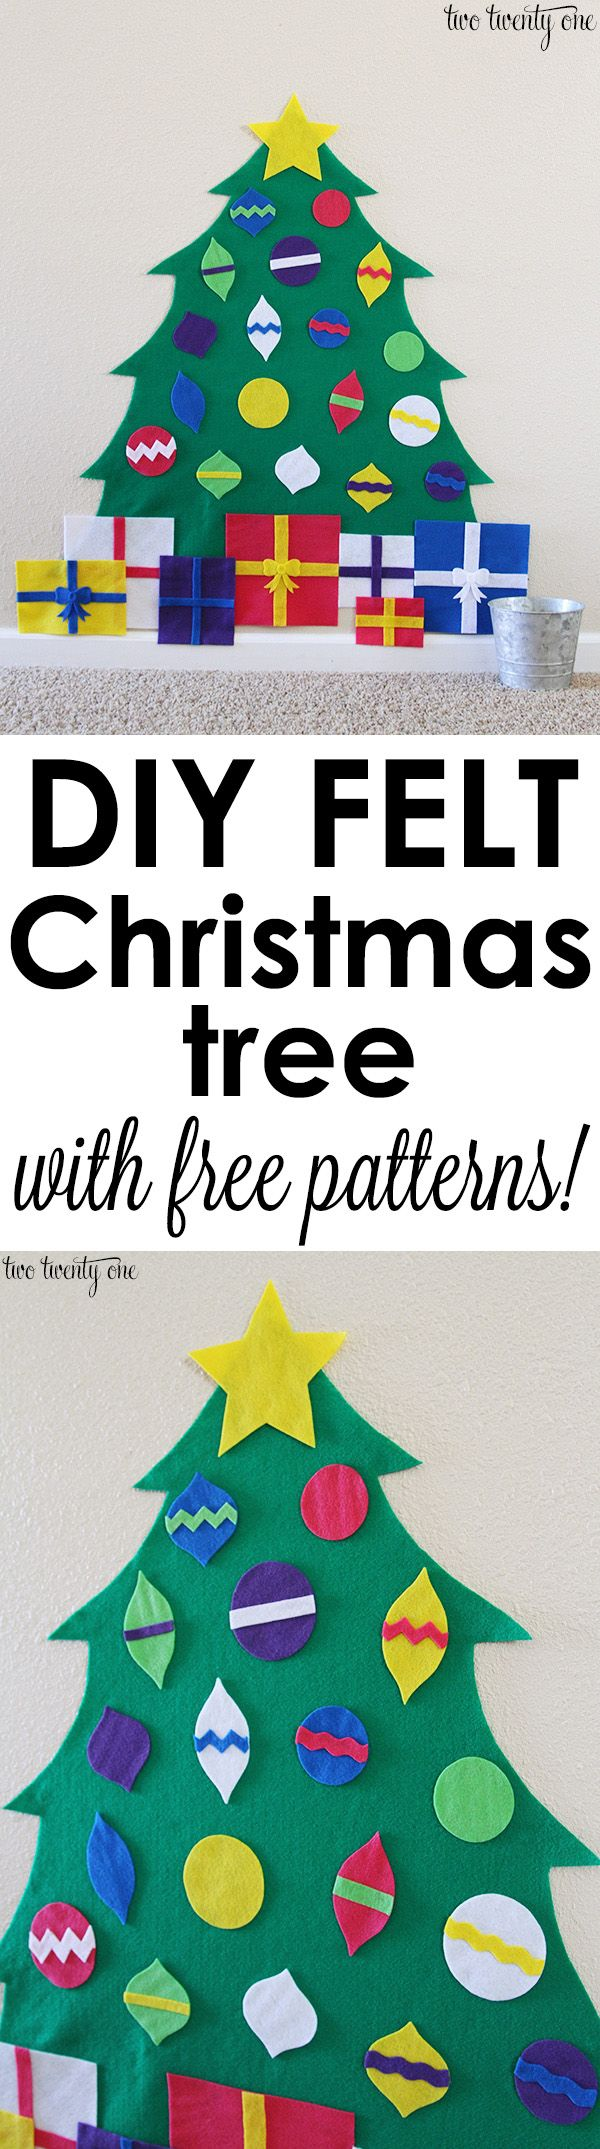 How to make a felt Christmas tree! Plus, free patterns!